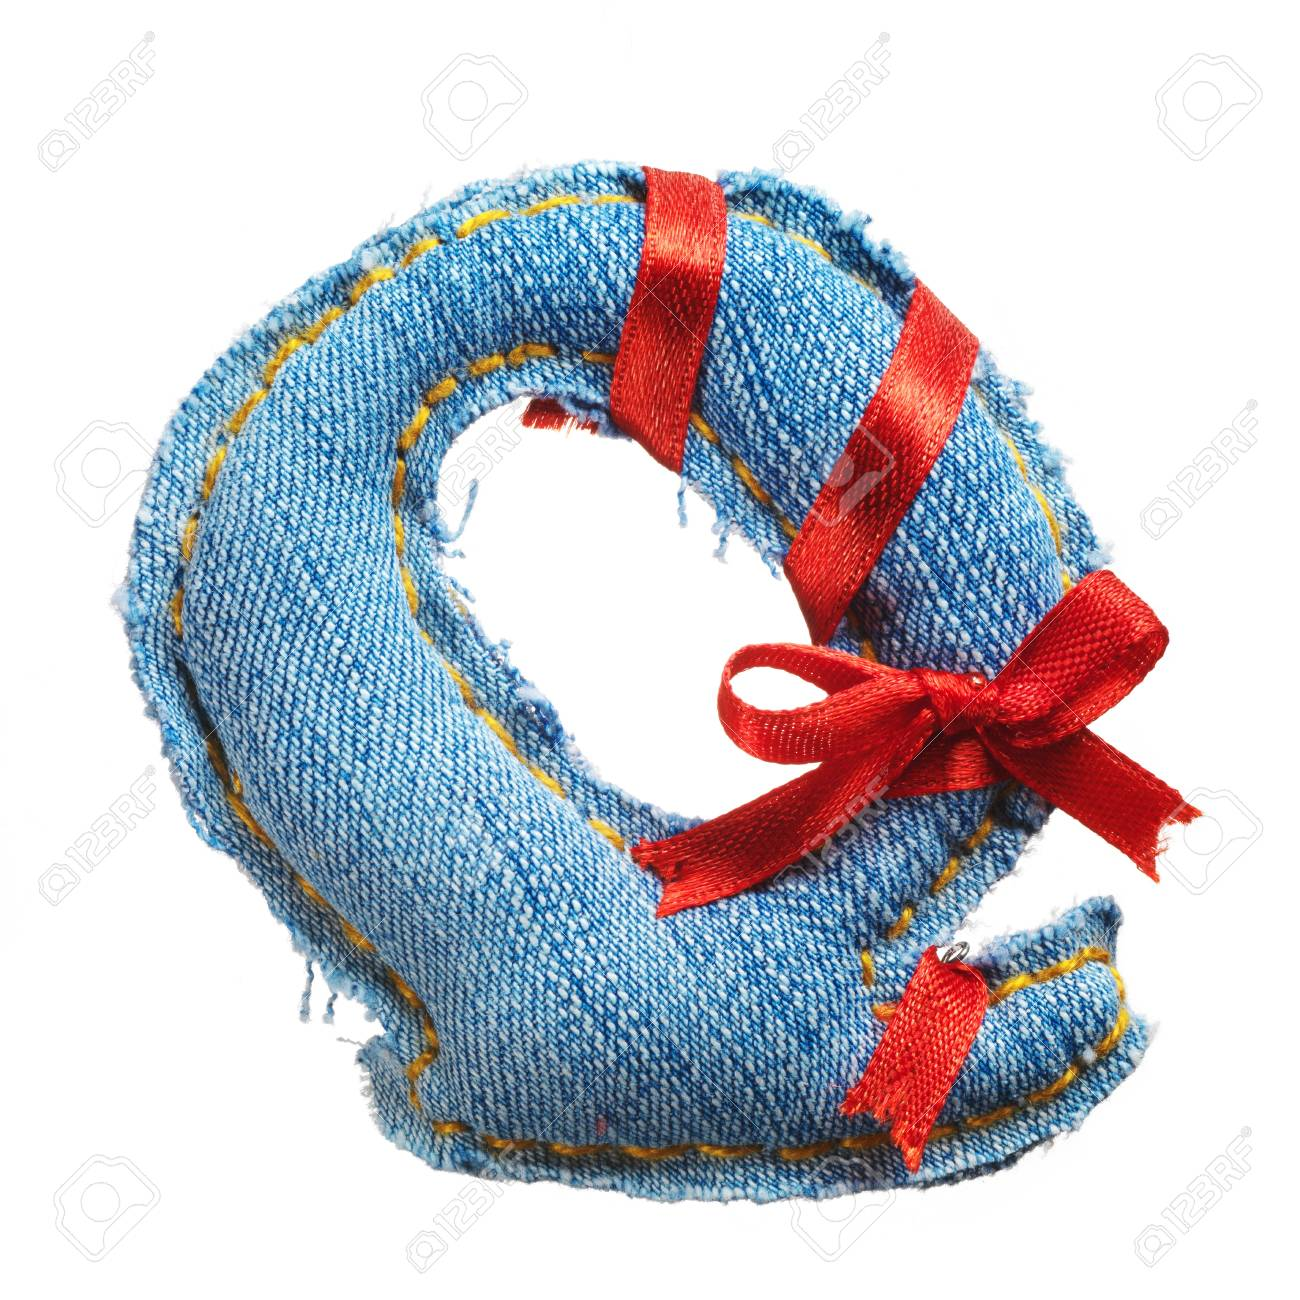 Handmade letter of jeans alphabet with holiday red ribbon isolated on white Stock Photo - 17604301